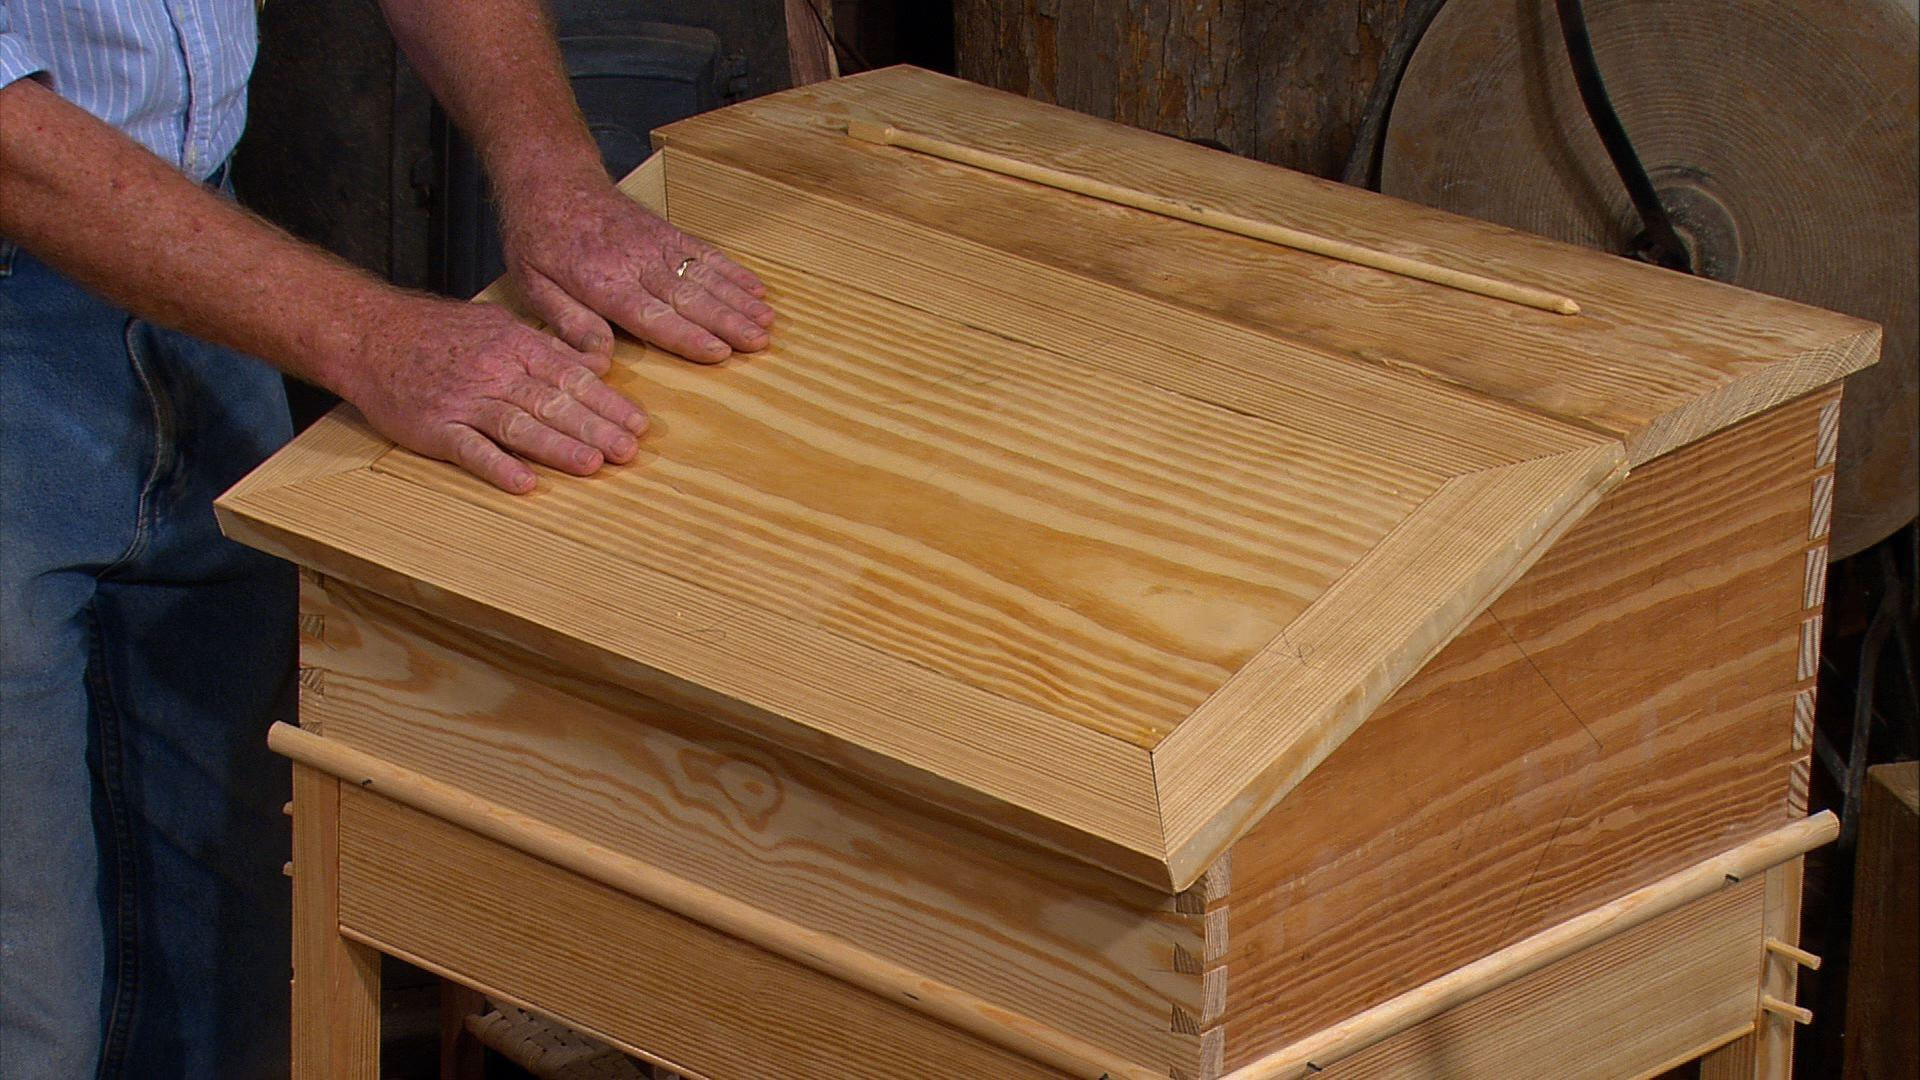 Permalink to woodworking shows on pbs